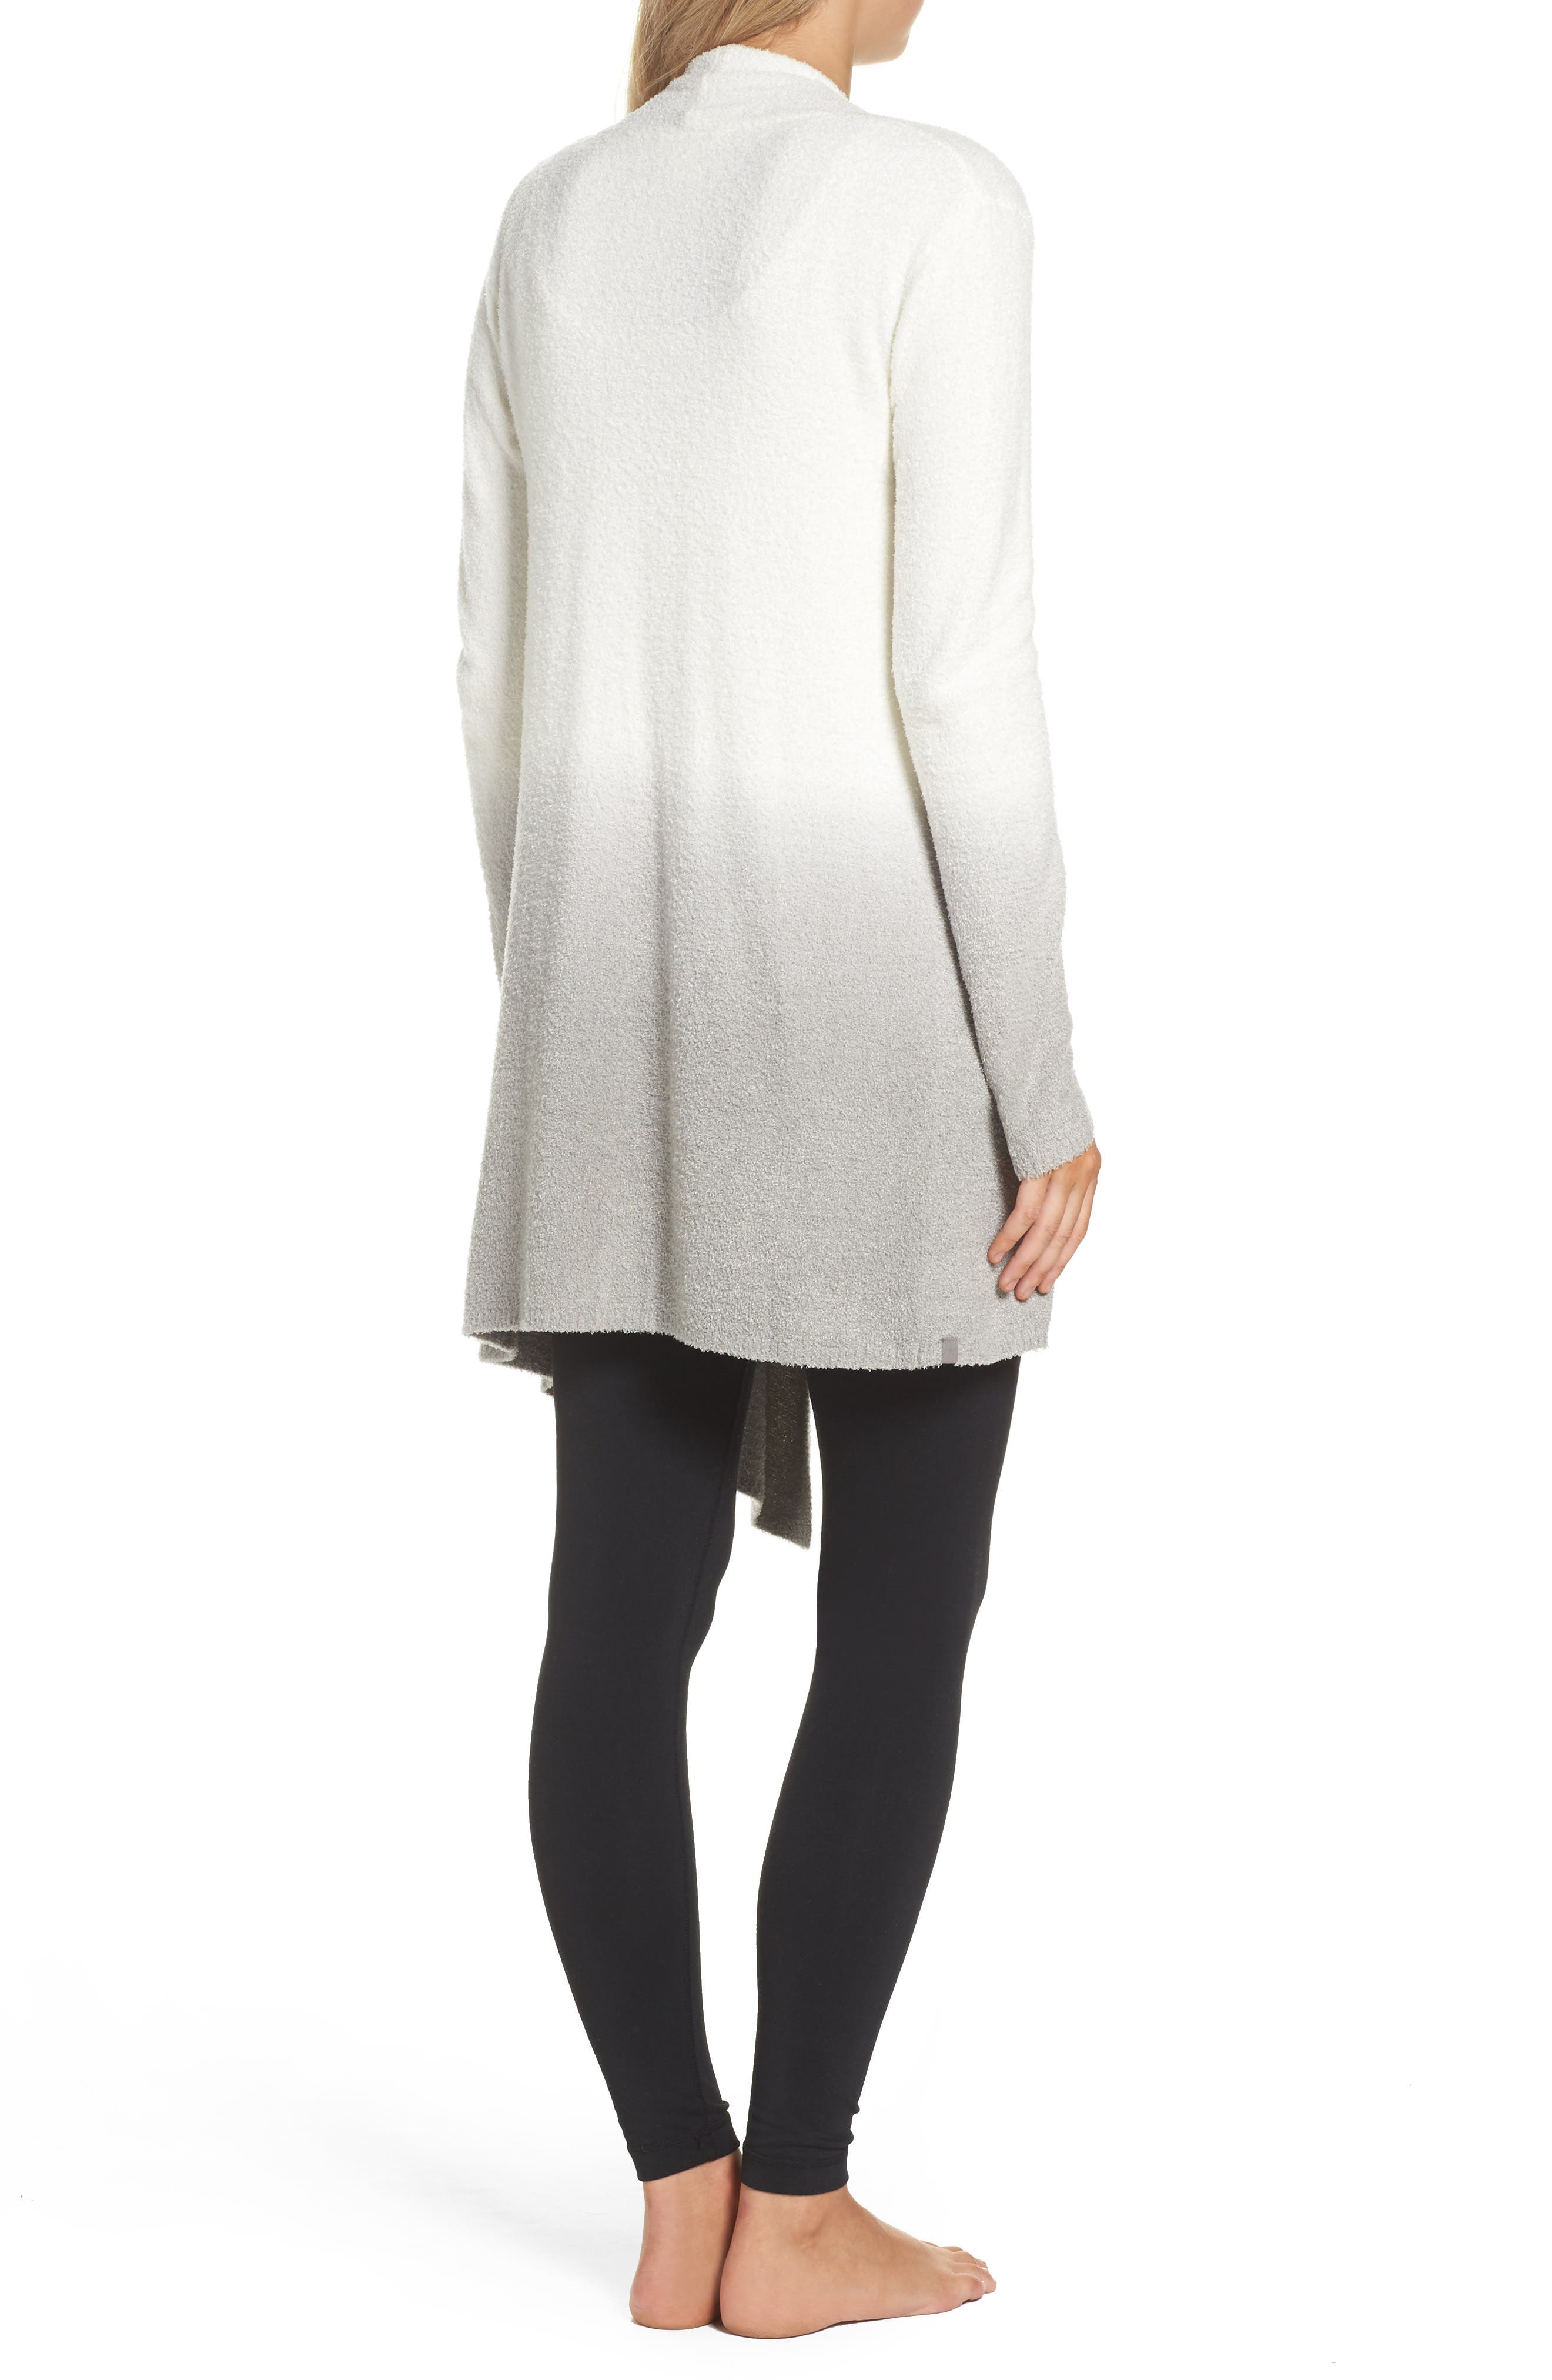 CozyChic Lite<sup>®</sup> Calypso Wrap Cardigan,                             Alternate thumbnail 2, color,                             White/ Pewter Ombre